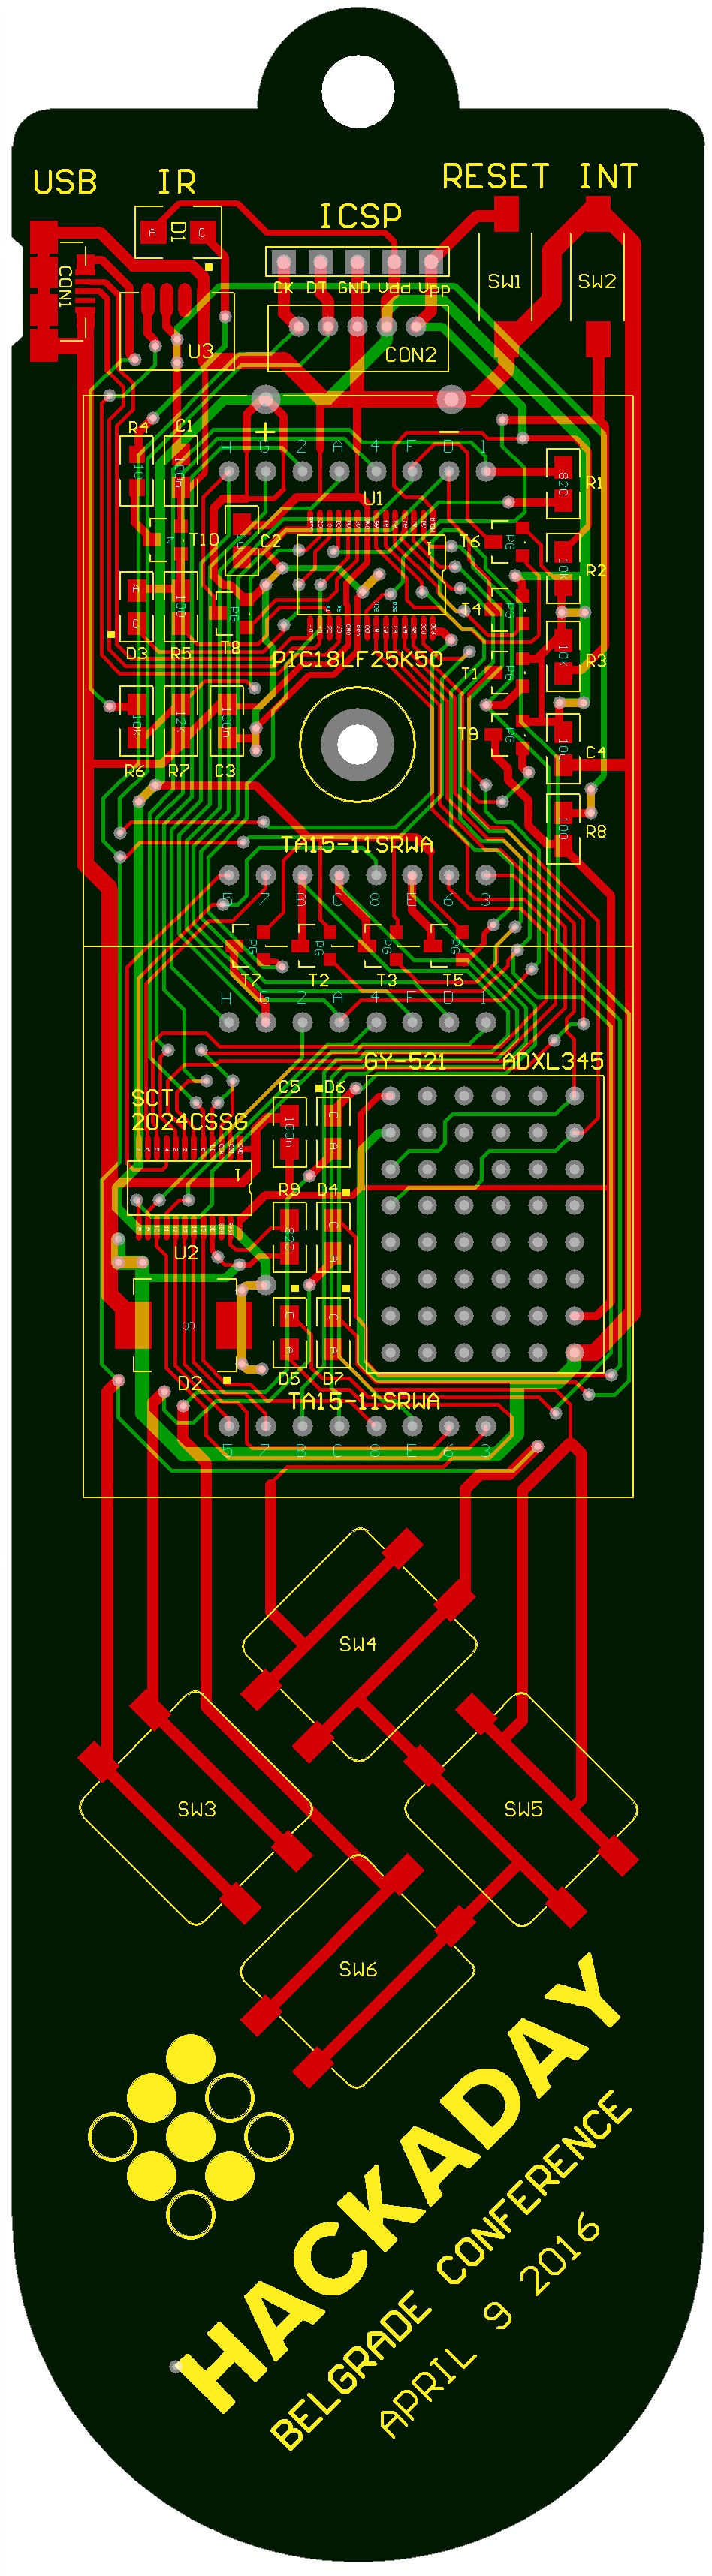 Badge For Hackaday Belgrade Conference Electronic Circuits 8085 Projects Blog Archive Timer Accelerometer Fun